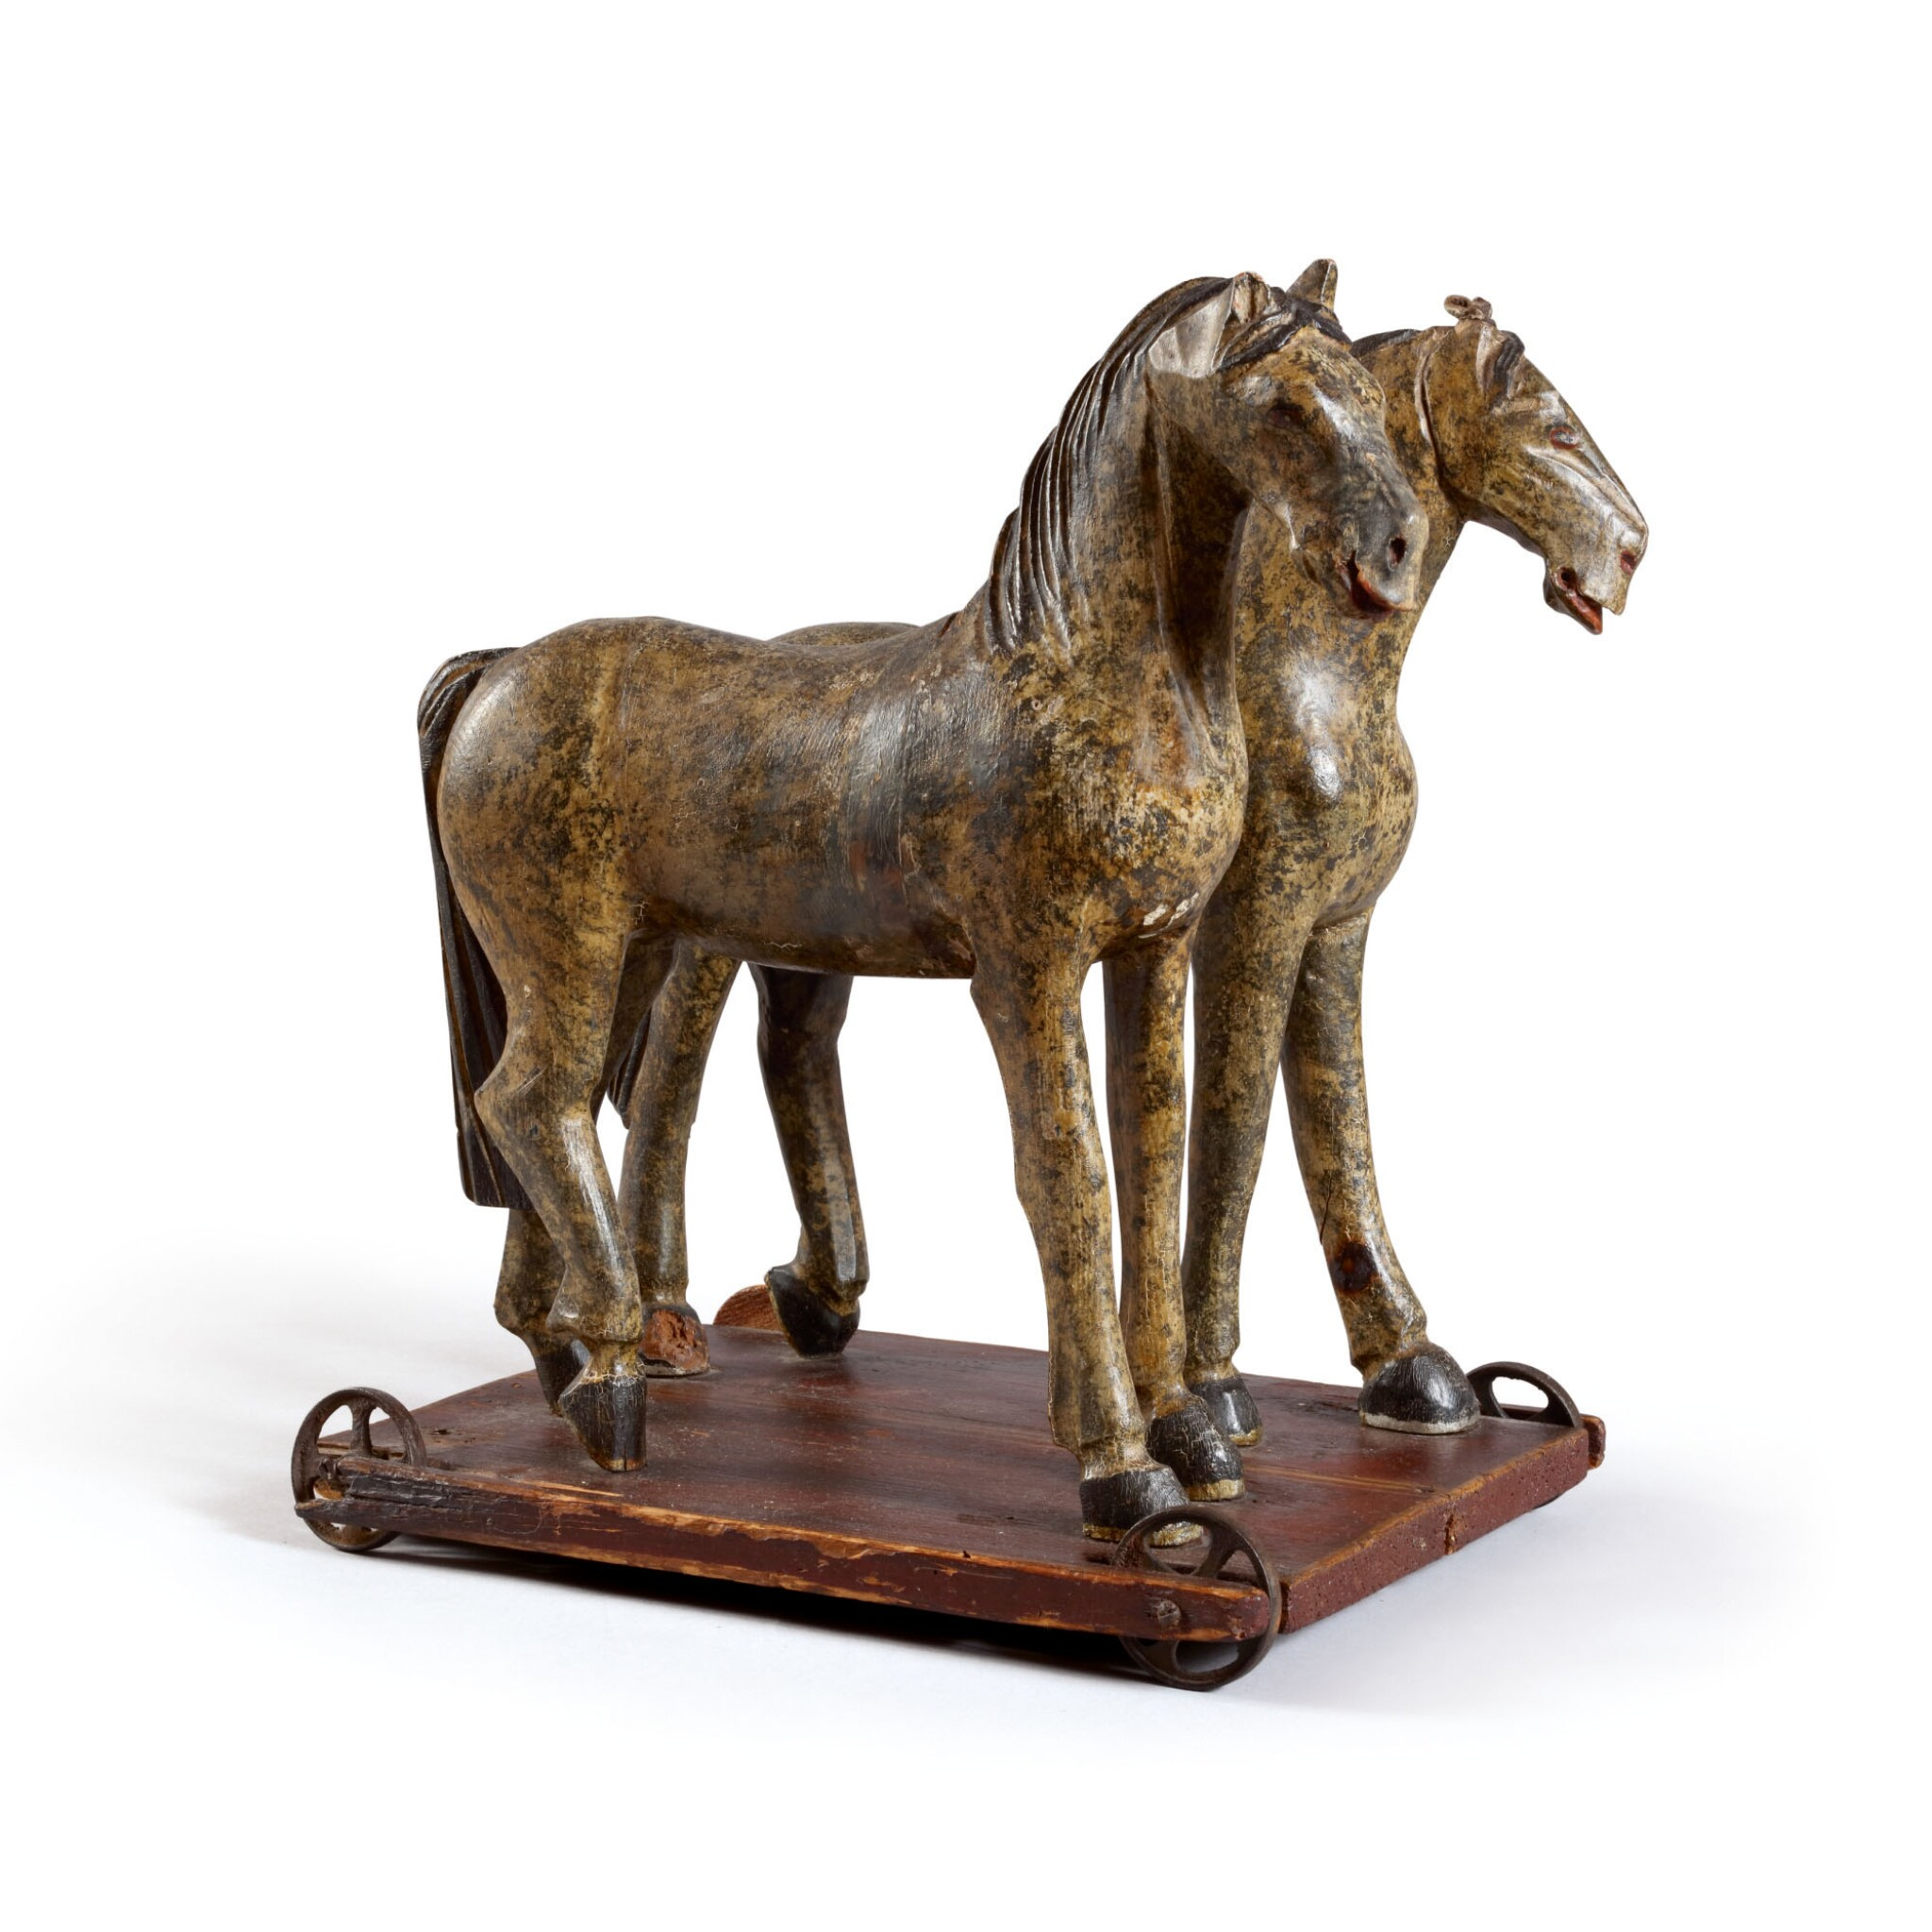 FINE CARVED AND DAPPLED PAINTED PINE HORSES PULL TOY, LATE 19TH CENTURY